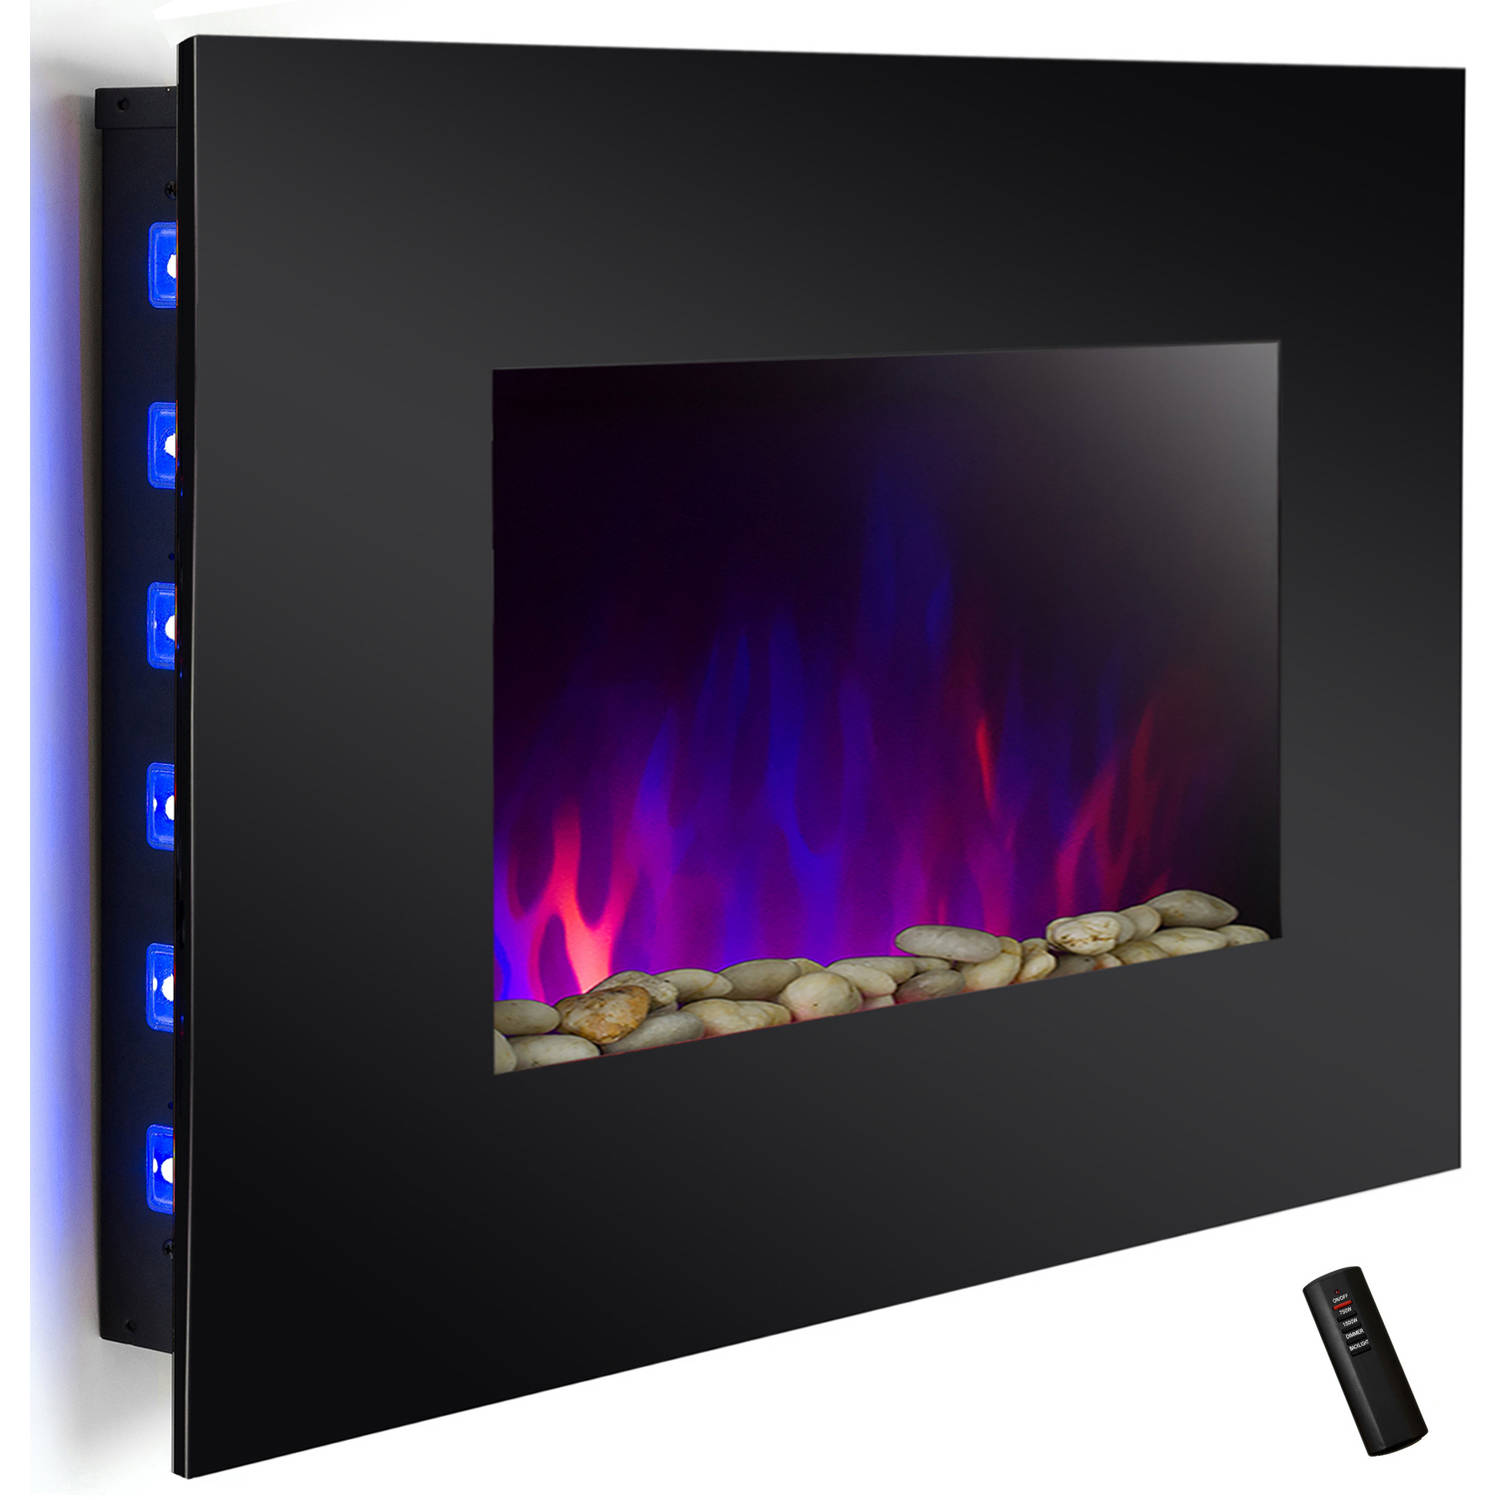 "AKDY FP0047 36"" 1500W Wall Mount Electric Fireplace Heater with Tempered Glass, Pebbles, Logs and Remote Control, Black"